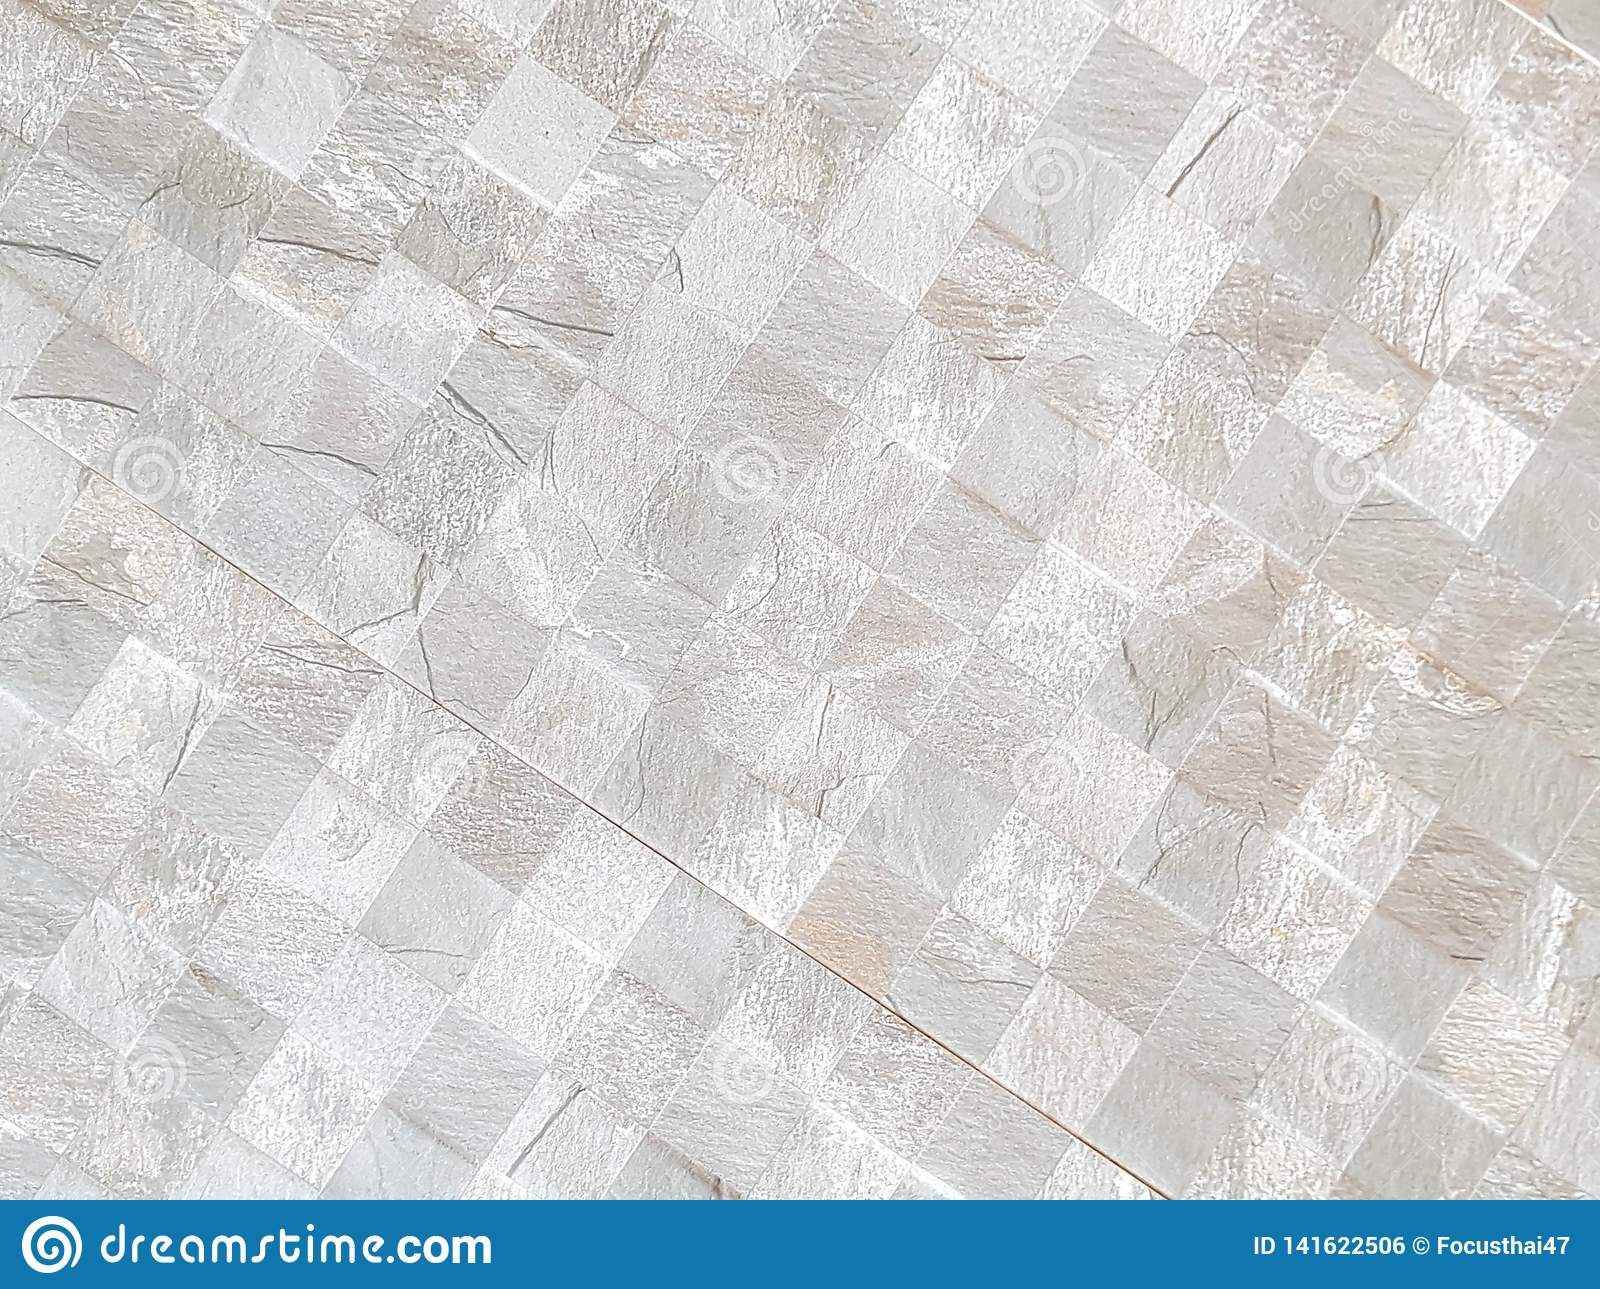 Background texture pattern granite, rock, marble, solid